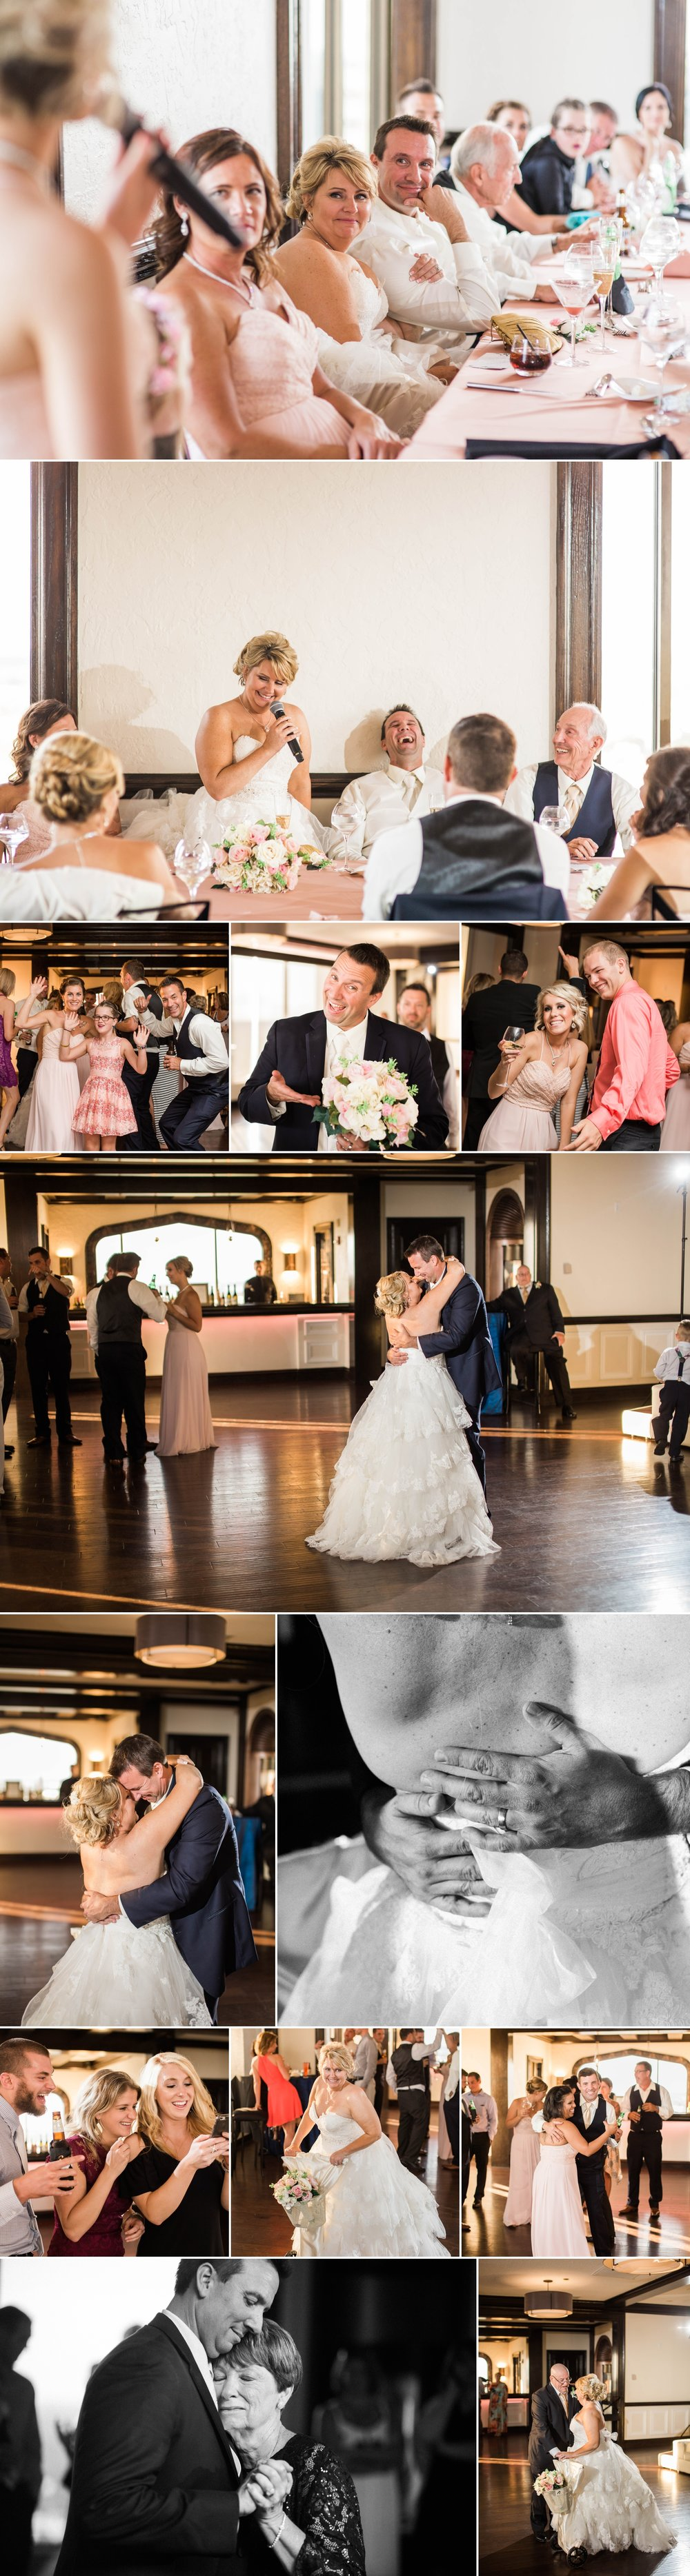 wedding-wedding day-downtown fort wayne-bride-groom-love-wedding party-reception-dance-party-parent-toasts-empyrean